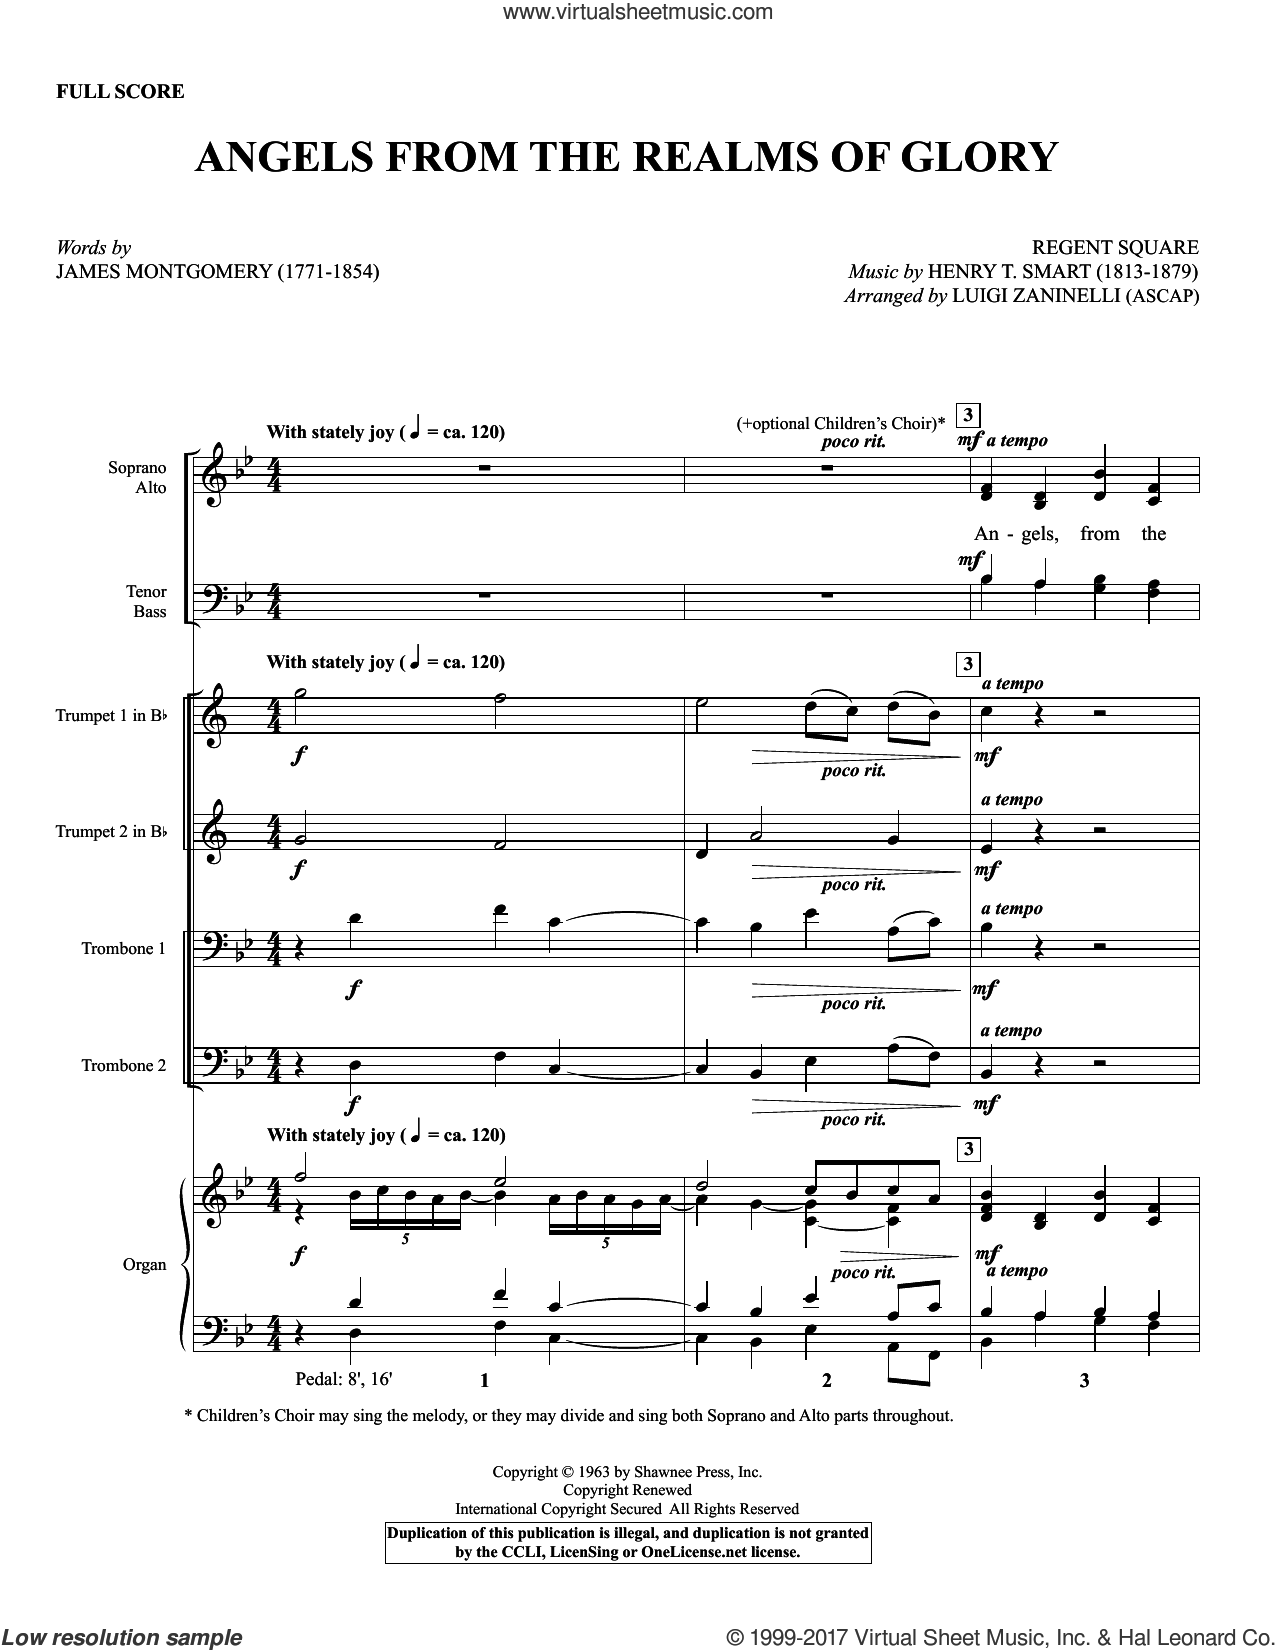 Angels from the Realms of Glory (COMPLETE) sheet music for orchestra/band by James Montgomery, Henry T. Smart and Luigi Zaninelli, Christmas carol score, intermediate orchestra/band. Score Image Preview.